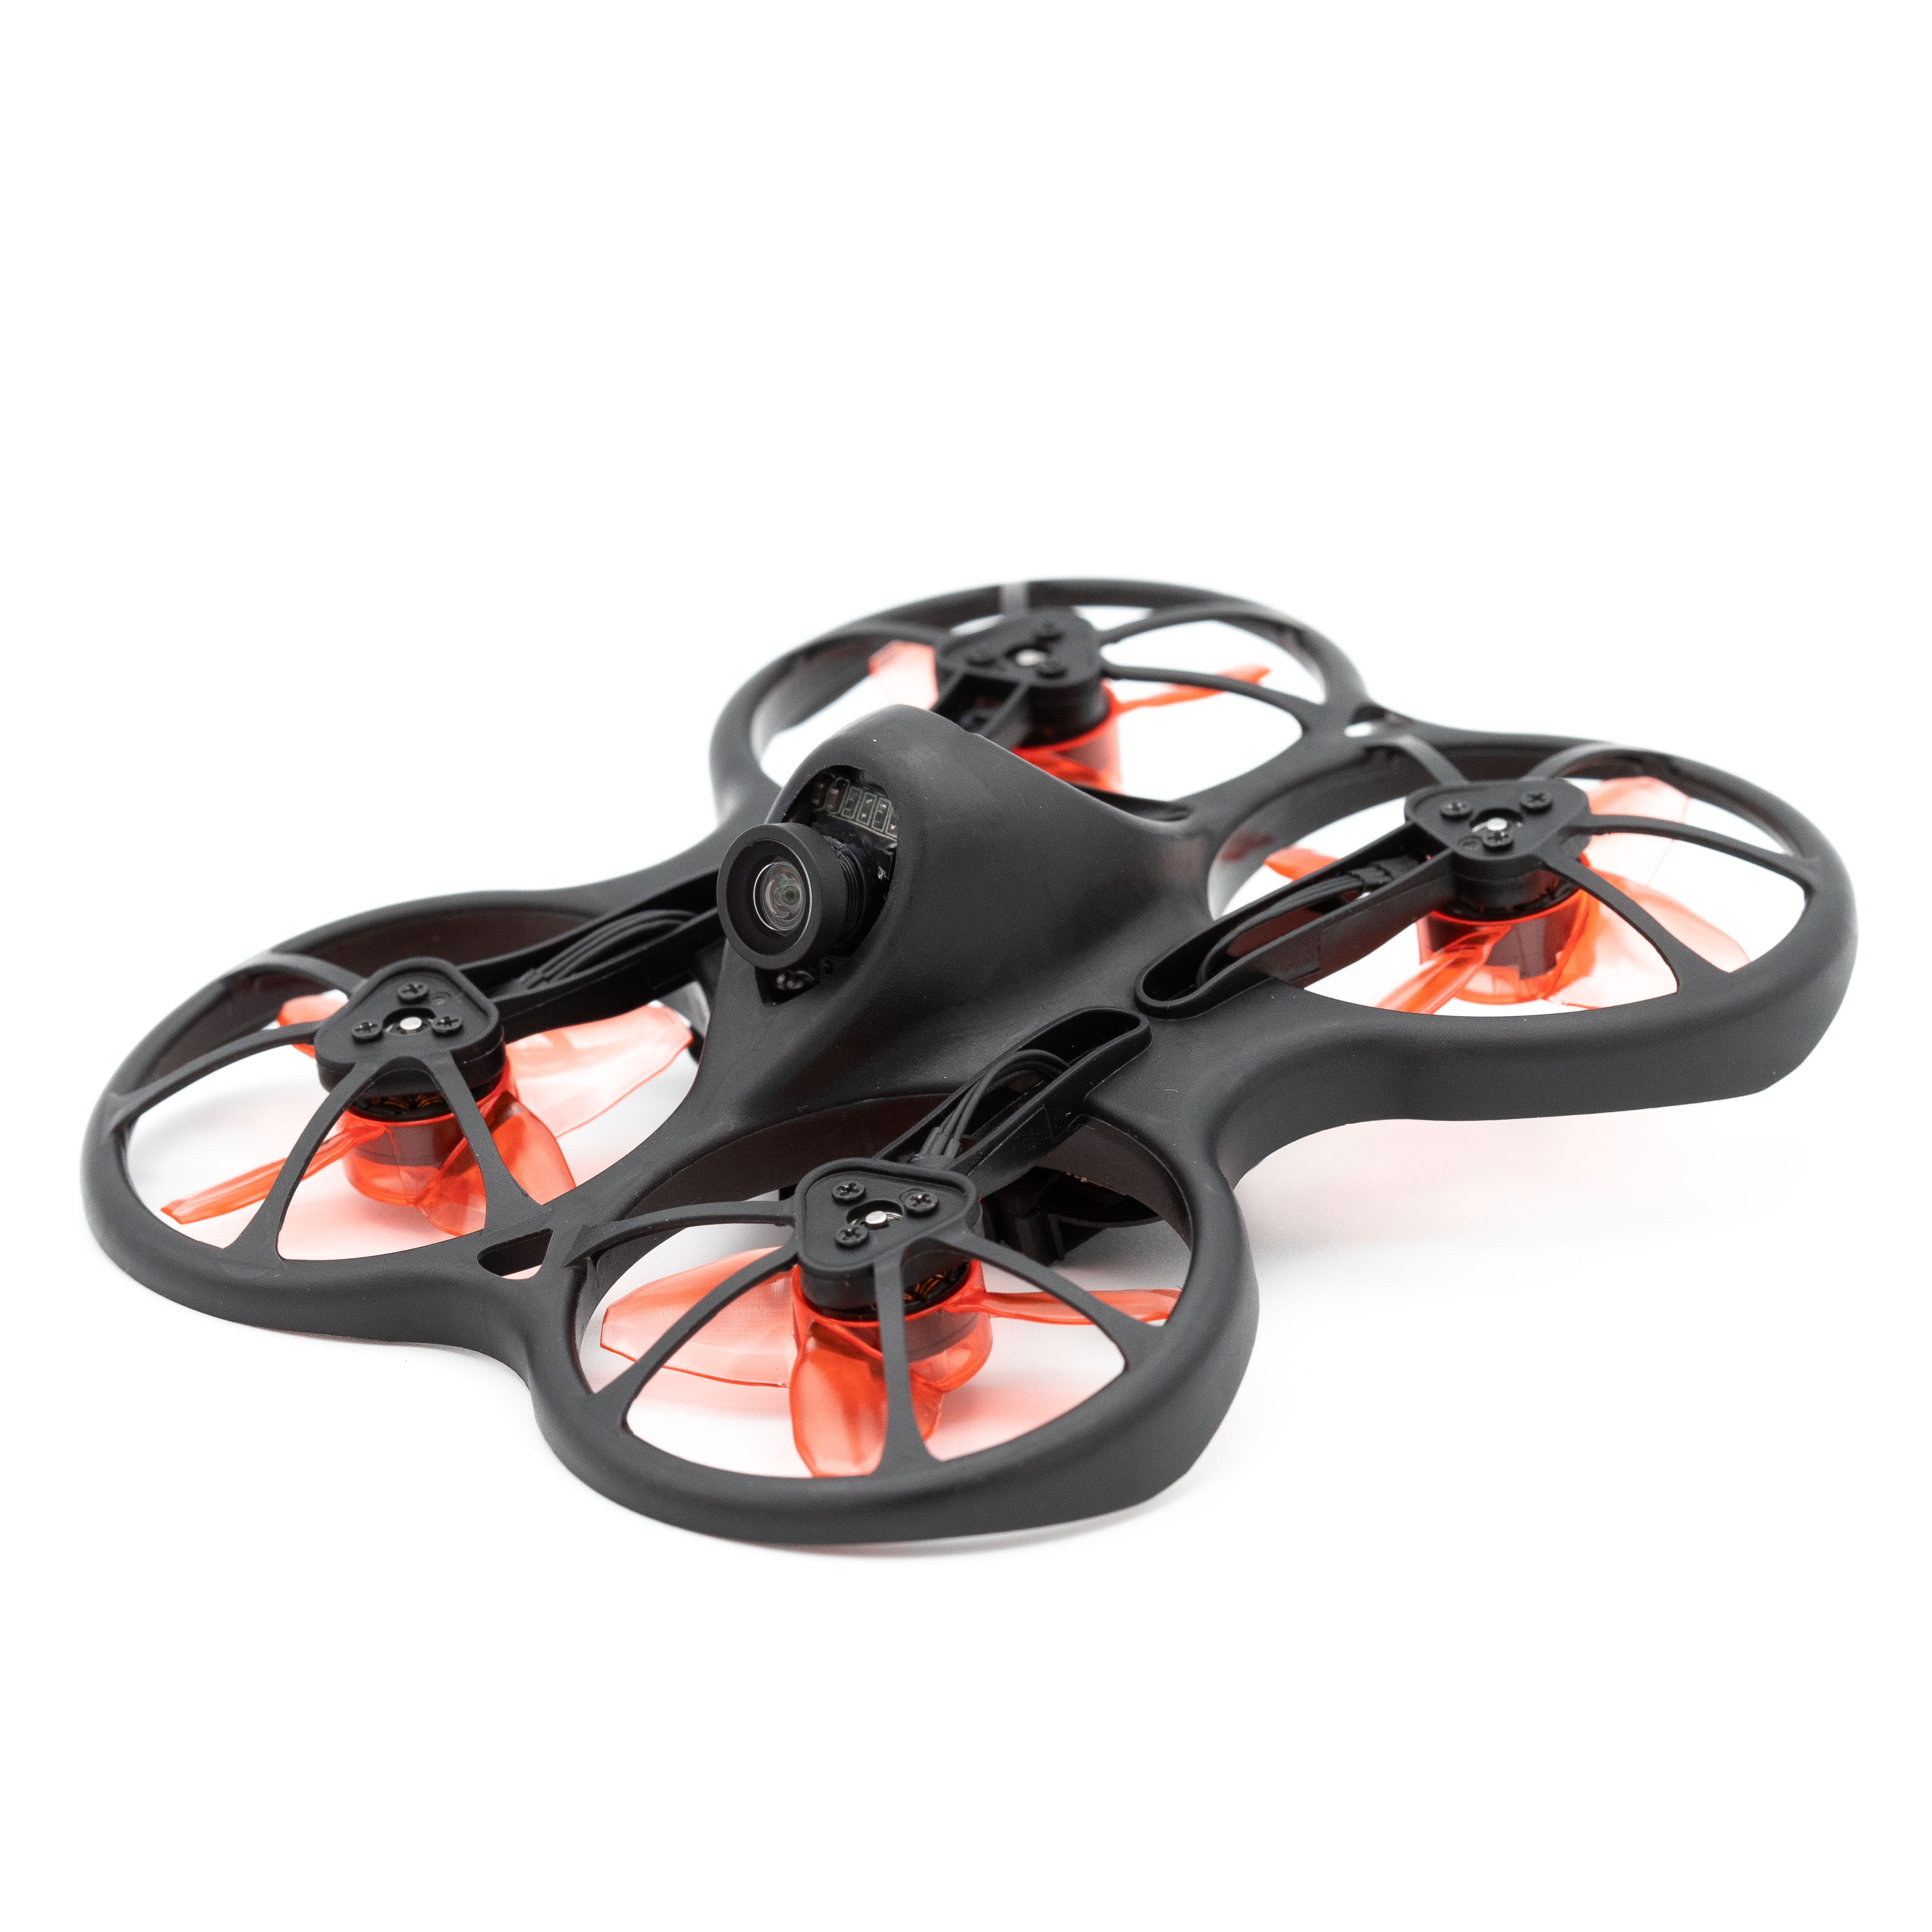 Hot Sales RC Helicopters EMAX Tinyhawk S 75mm F4 OSD 1 - 2S Micro Indoor <font><b>FPV</b></font> Racing <font><b>Drone</b></font> BNF 600TVL CMOS <font><b>Camera</b></font> Brushles image